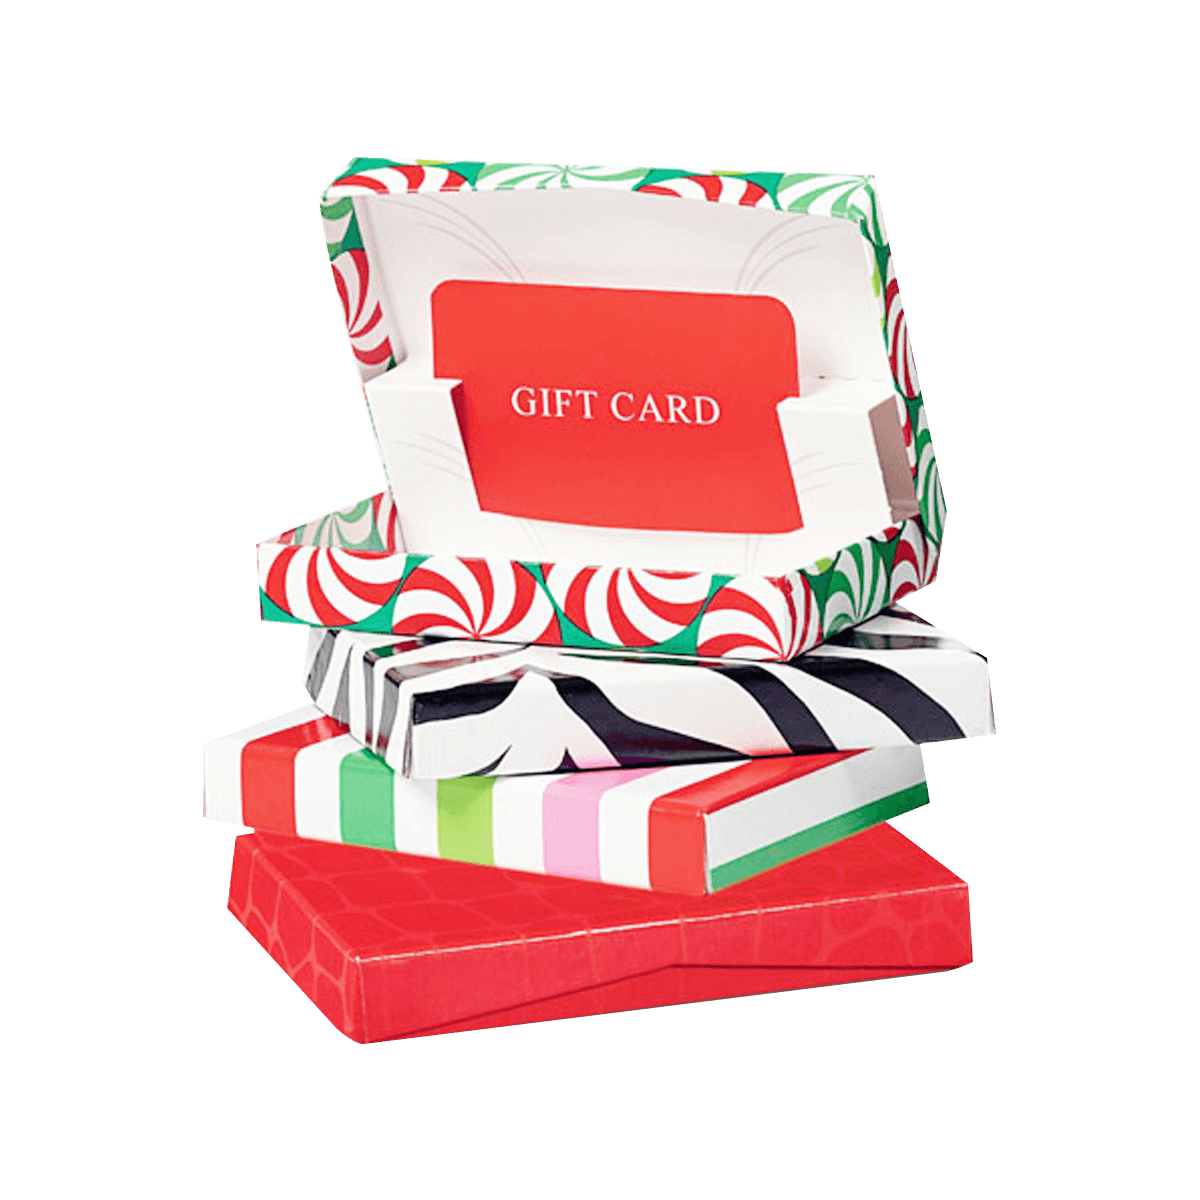 How Gift Card Boxes can Add Charm to Even Simplest Gifts - shortkro